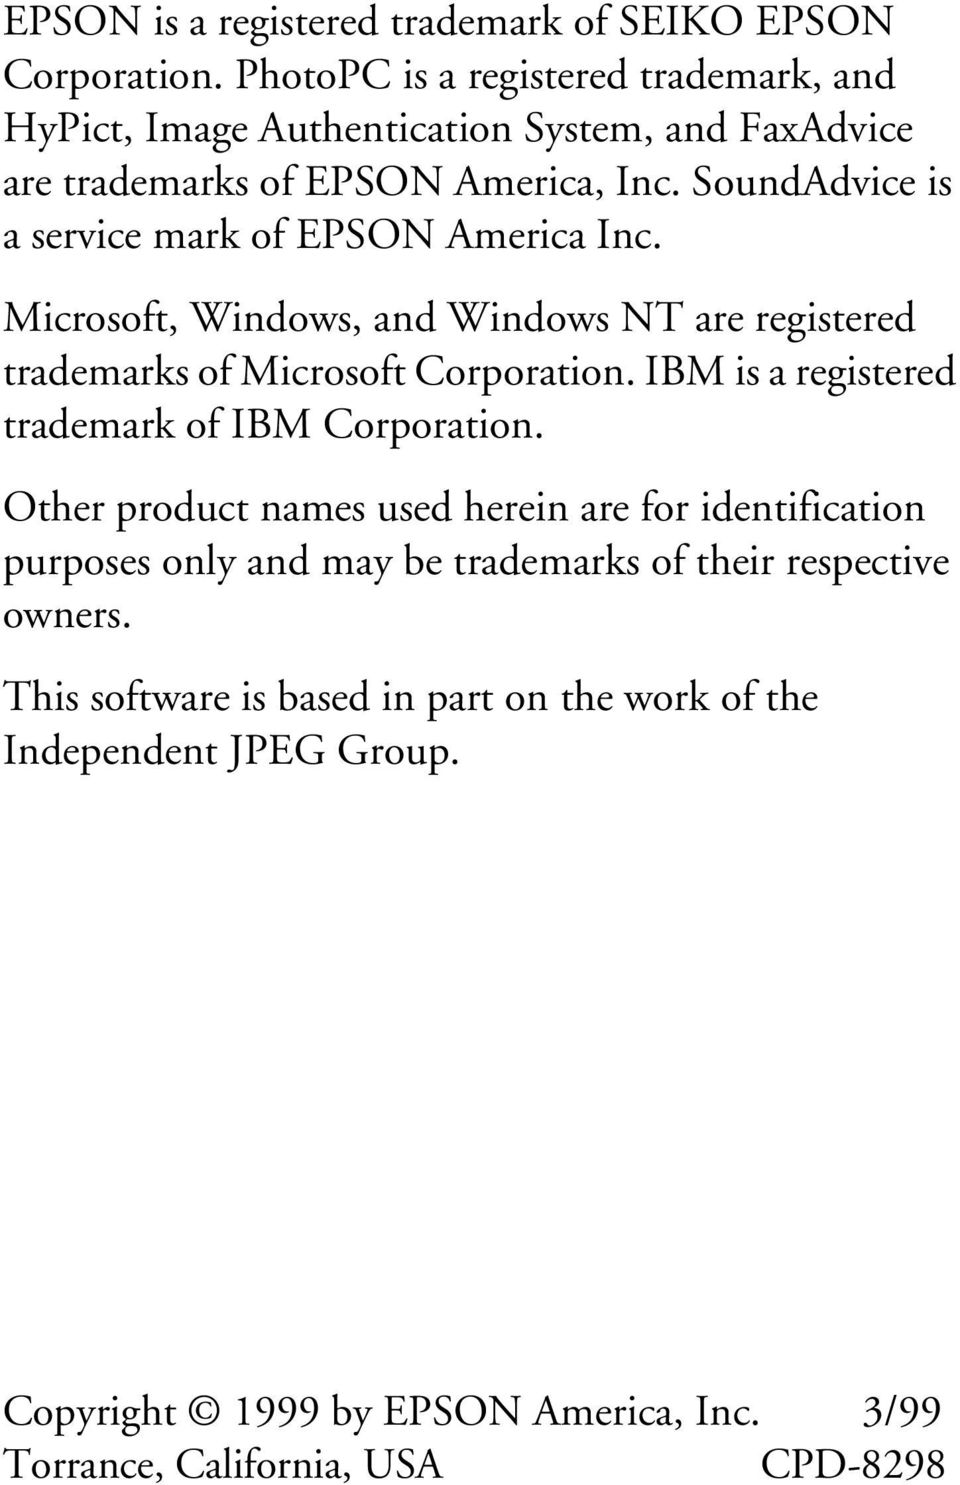 SoundAdvice is a service mark of EPSON America Inc. Microsoft, Windows, and Windows NT are registered trademarks of Microsoft Corporation.